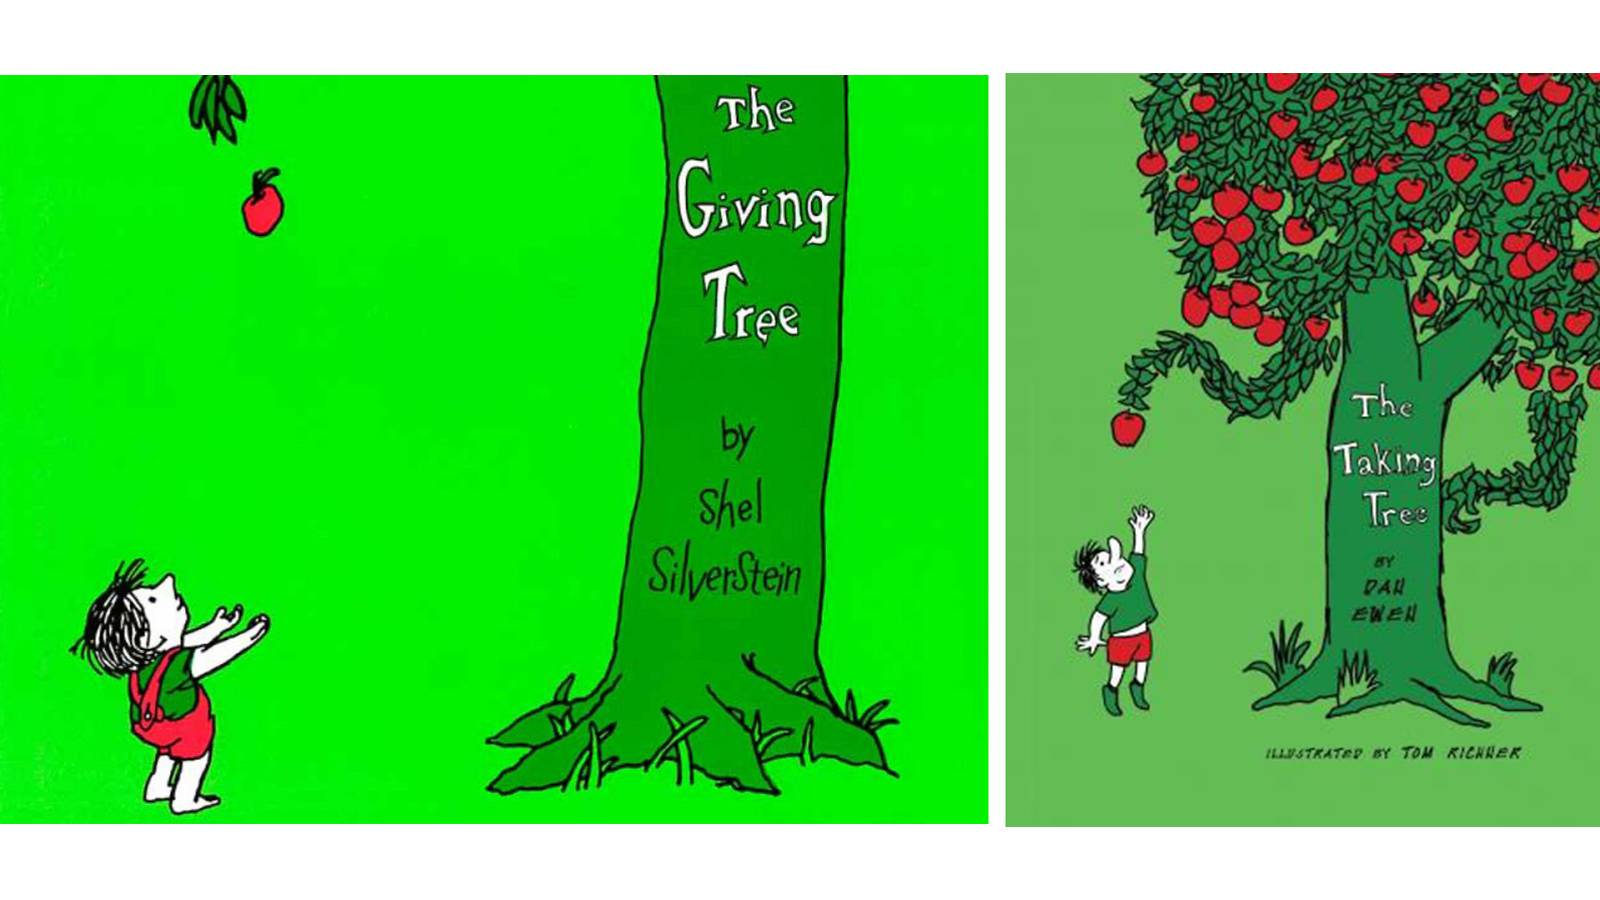 The Giving Tree & The Taking Tree